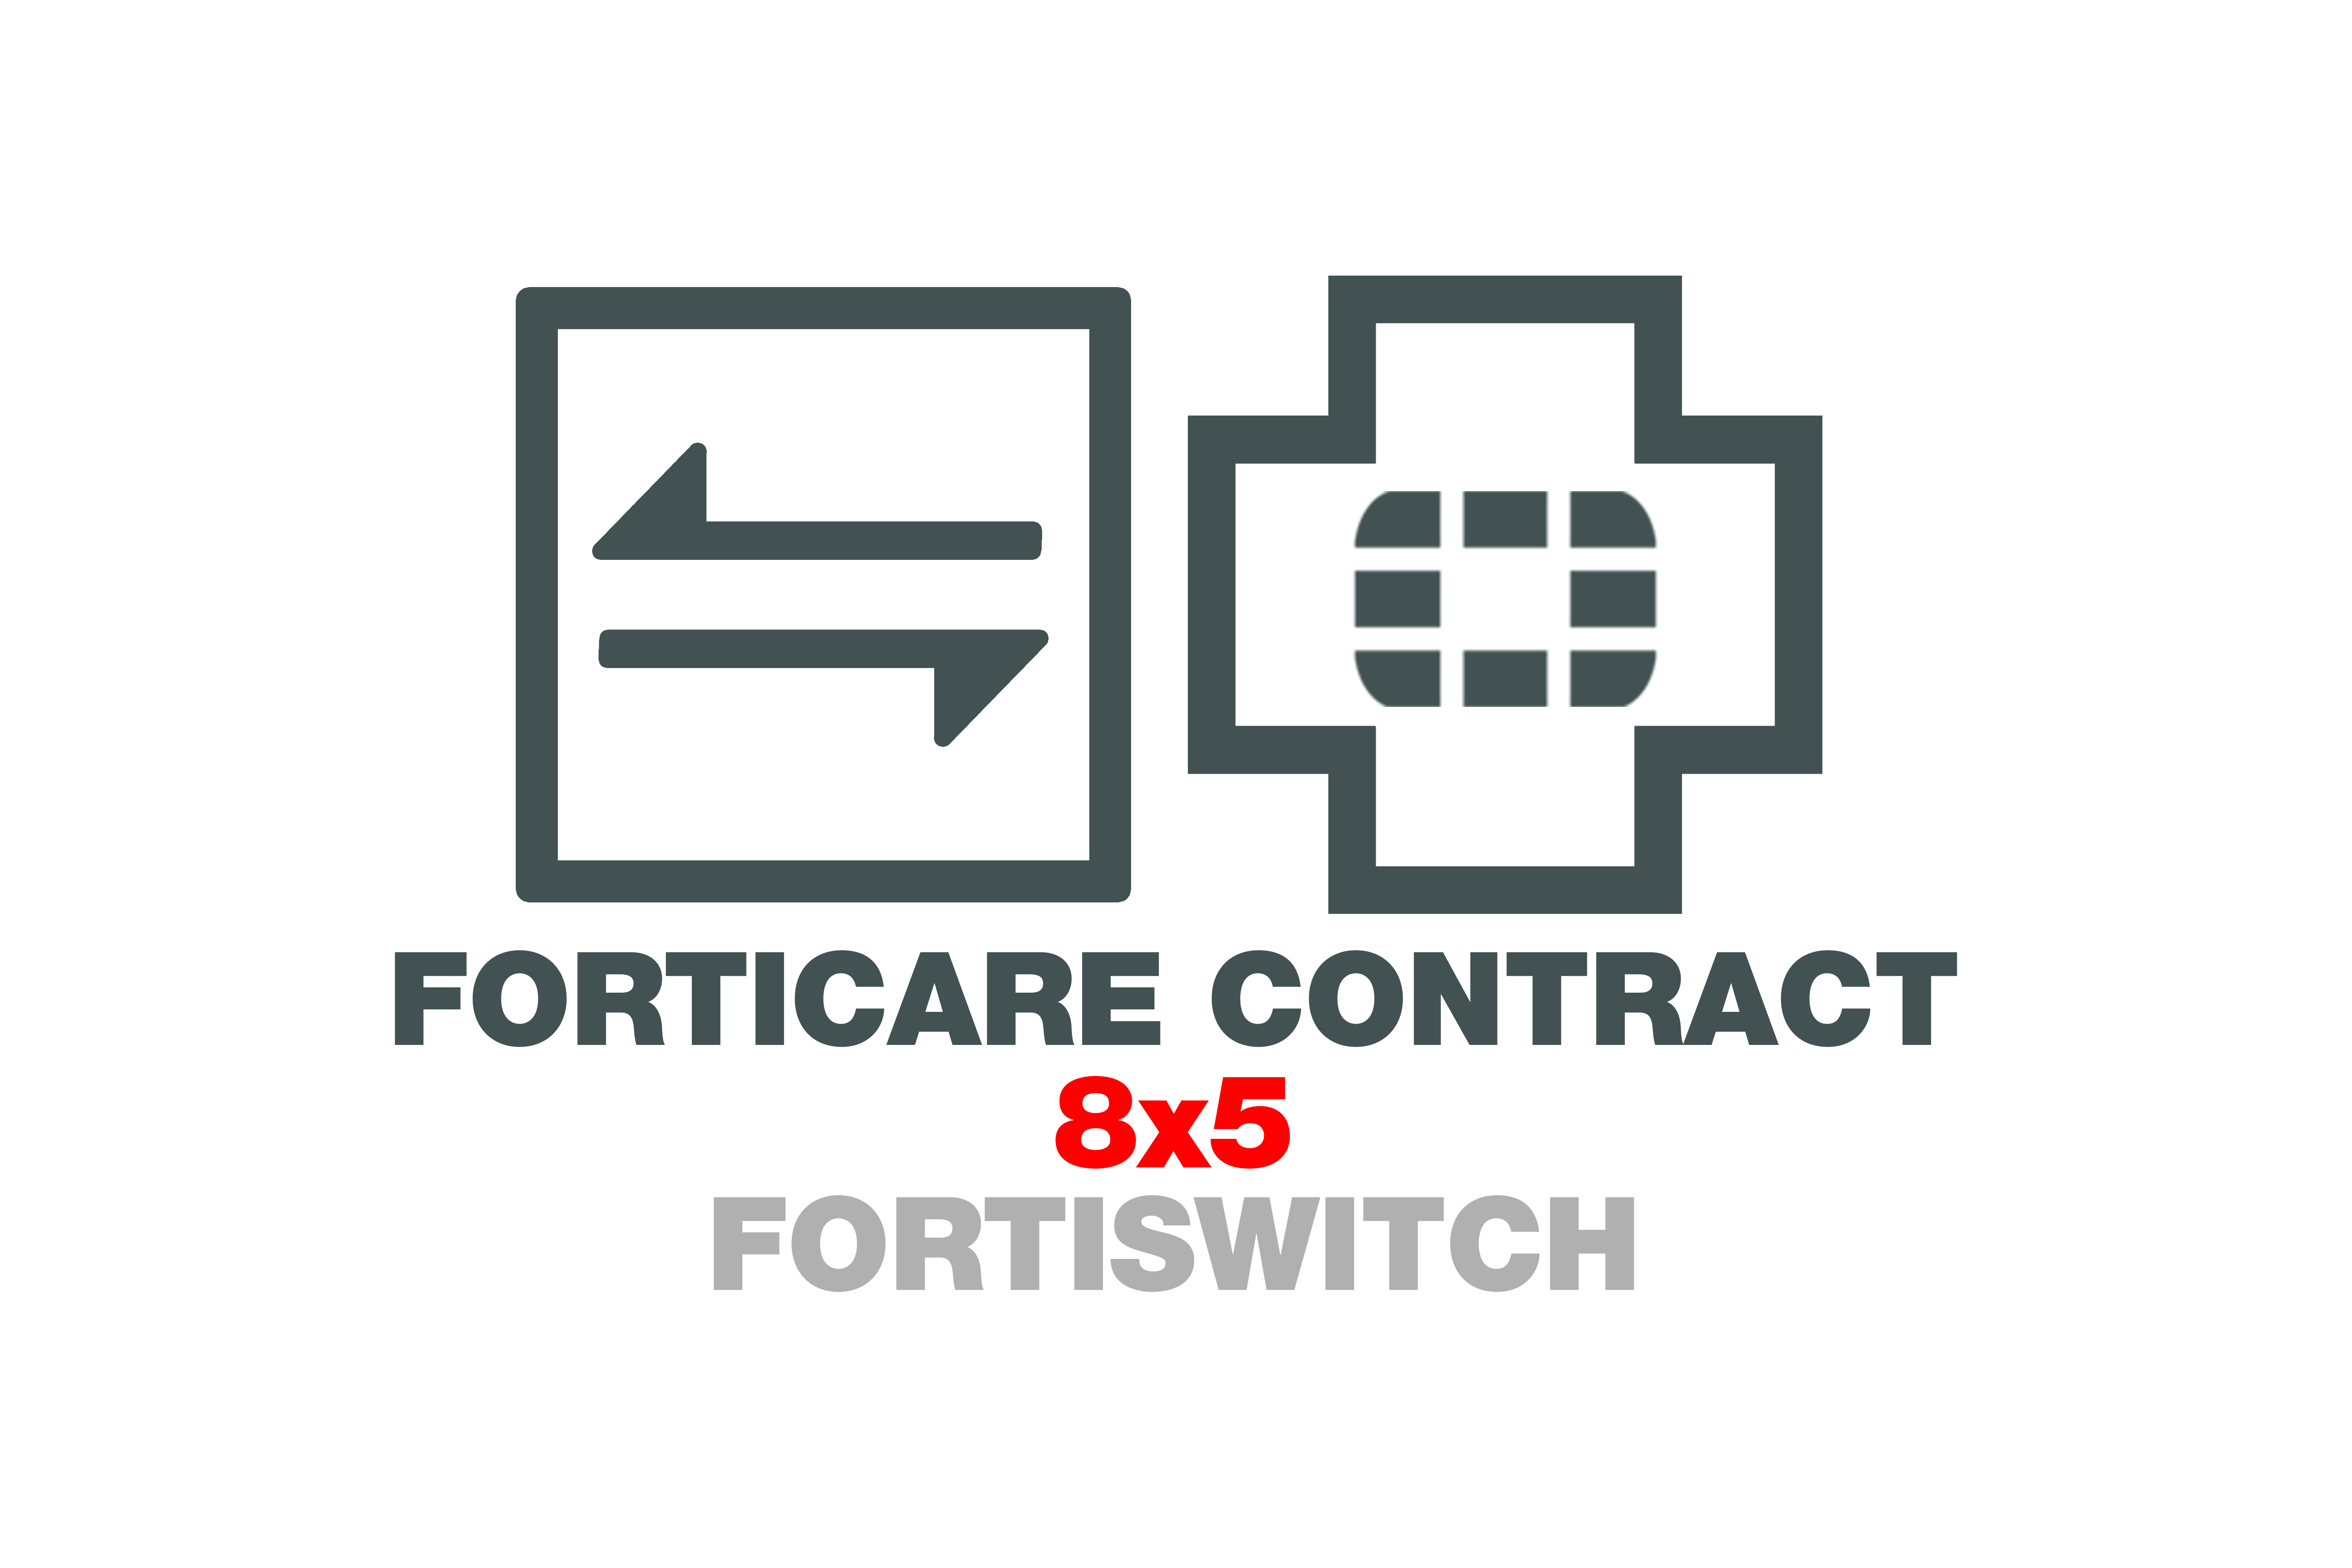 FortiSwtch-548D-FPOE 8x5 FortiCare Contract